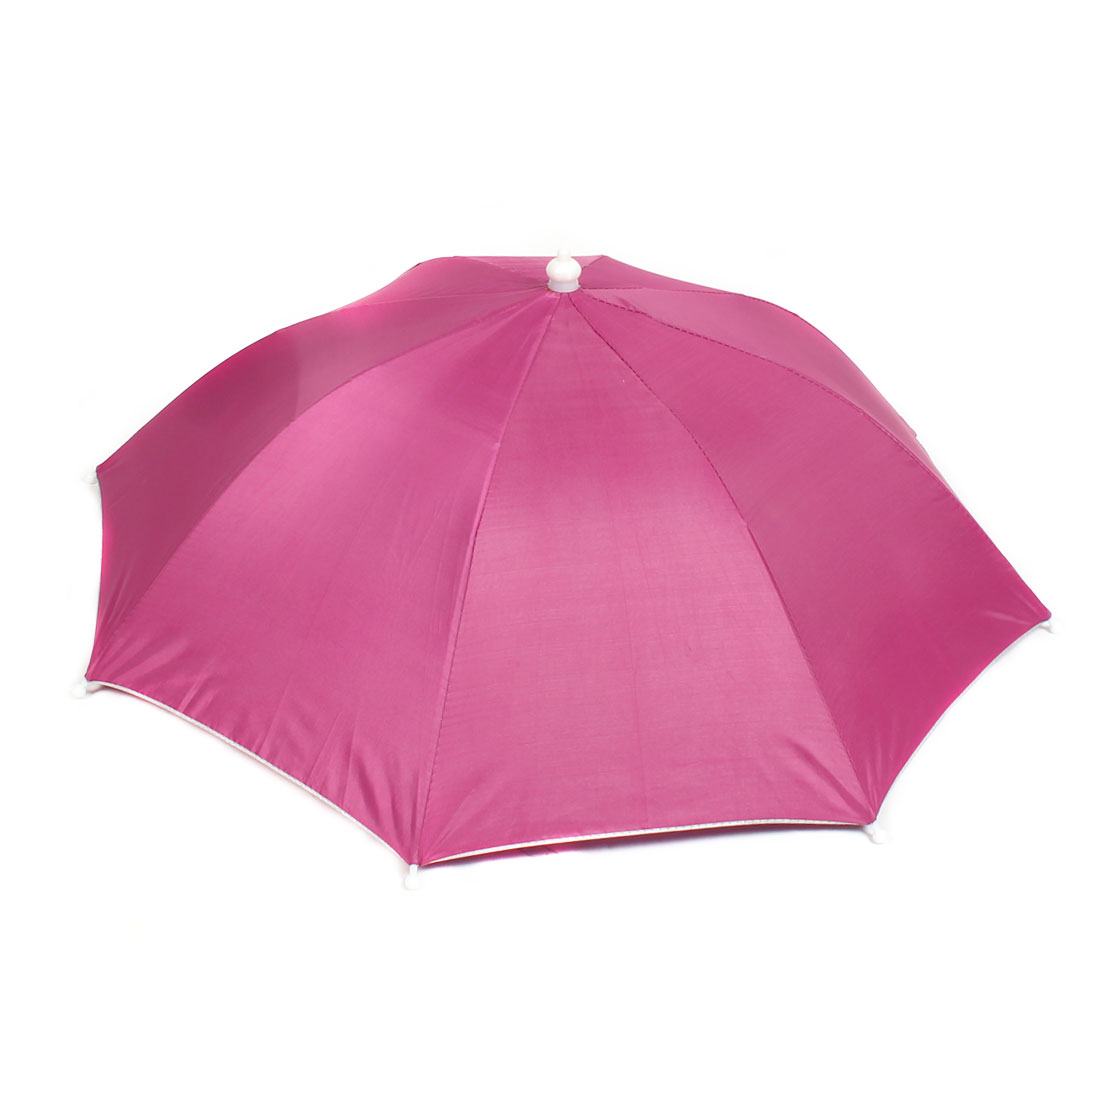 Outdoor Fishing Camping Sun Rain Headband Foldable Umbrella Hat Cap Fuchsia